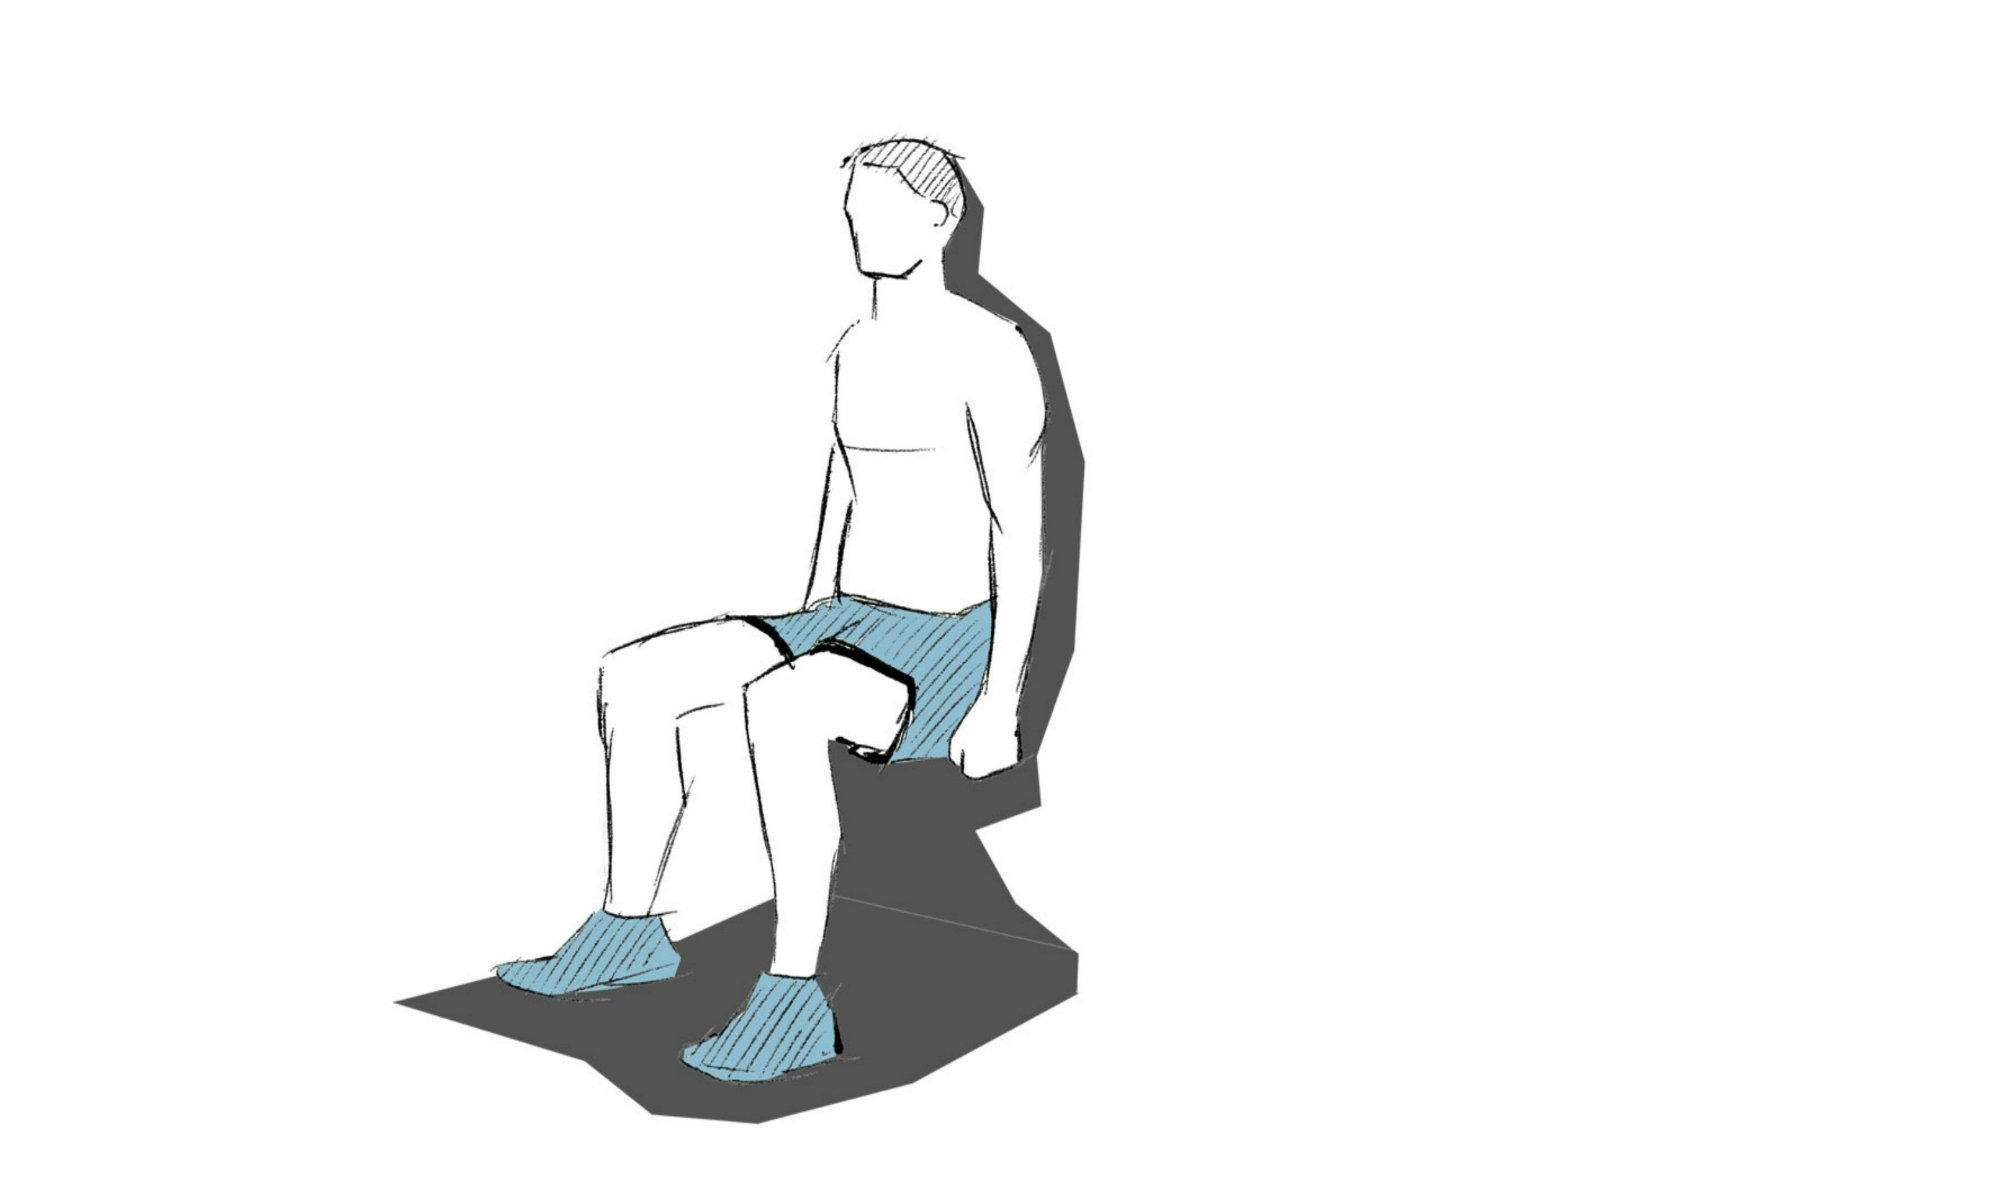 The wall squat exercise.